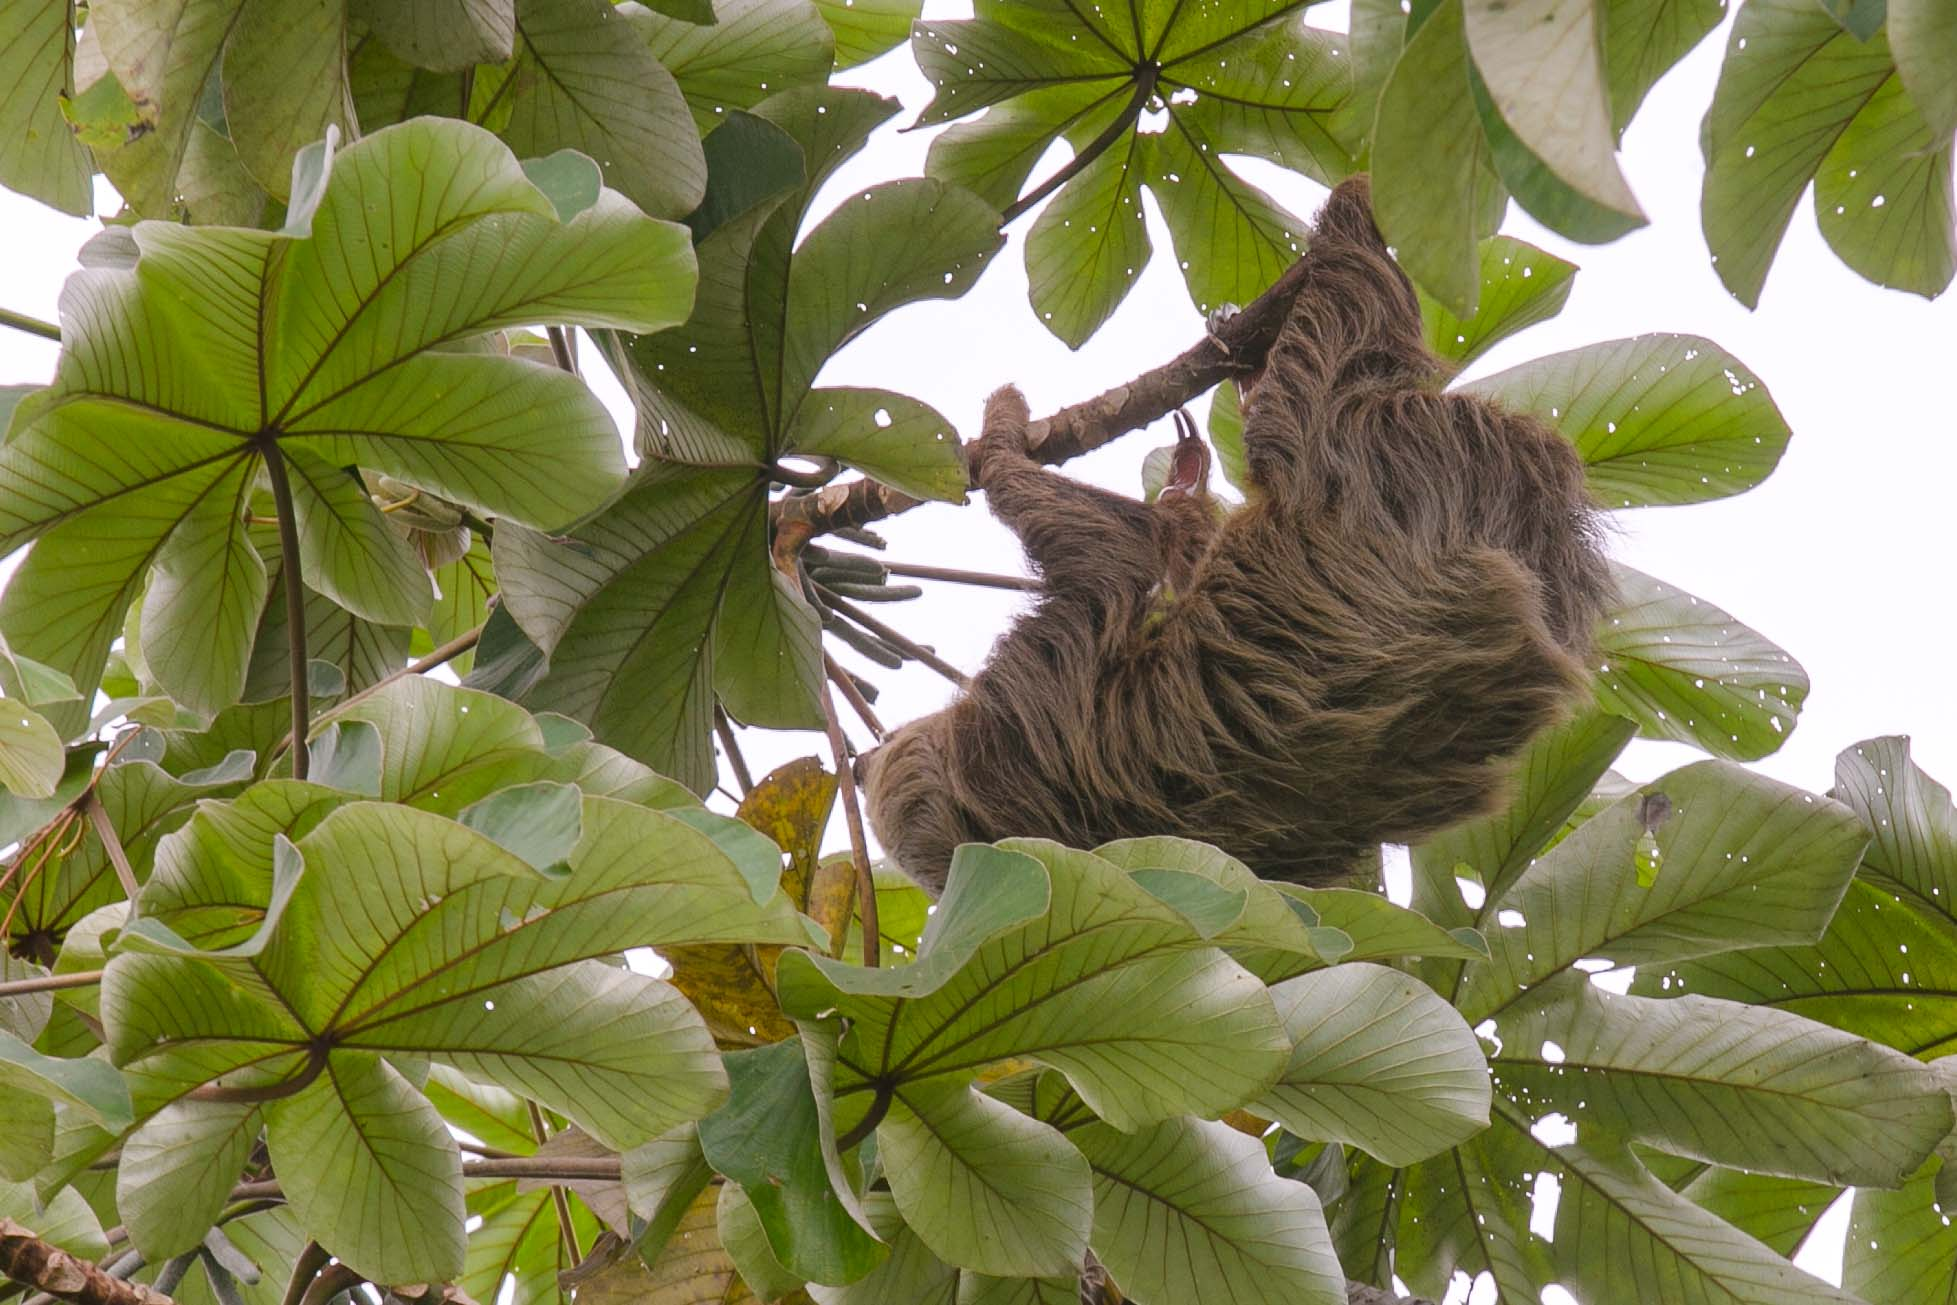 Sloth in Gamboa rainforest of Panama